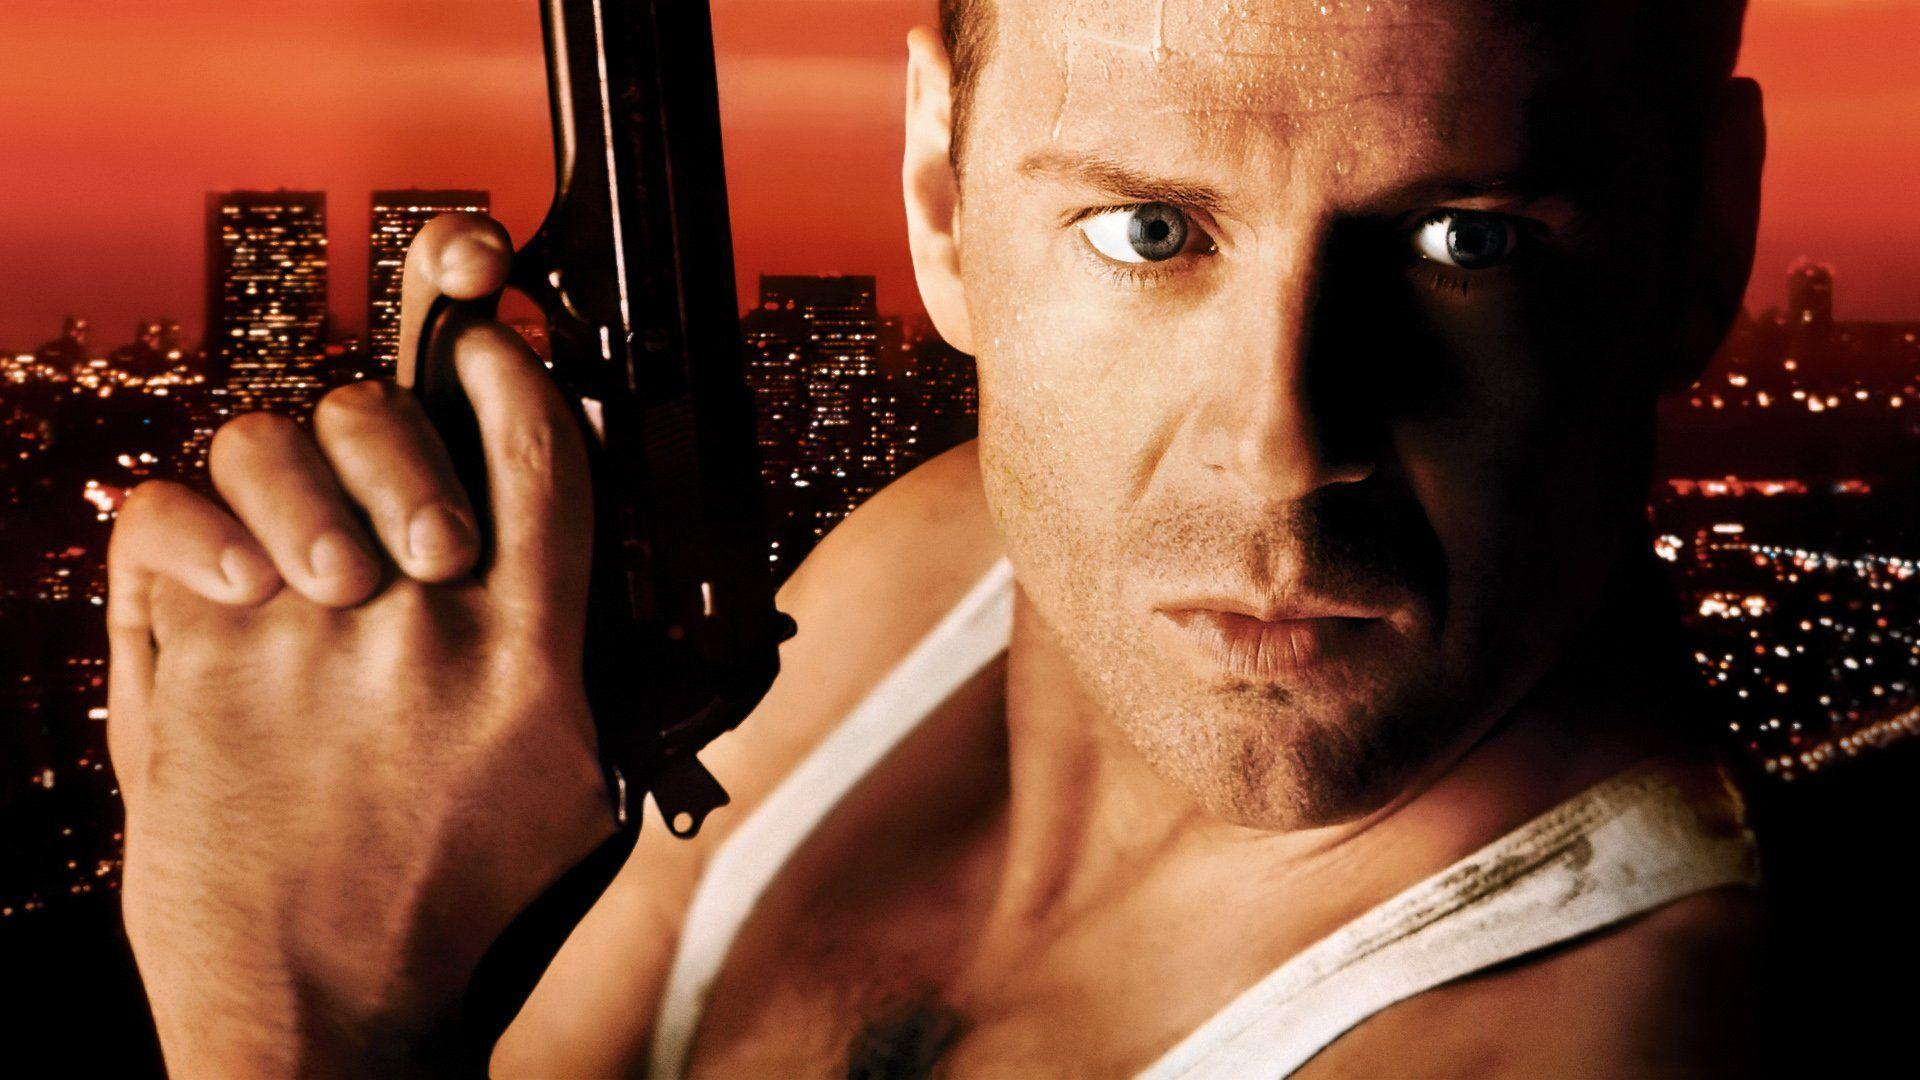 10 Die Hard HD Wallpapers